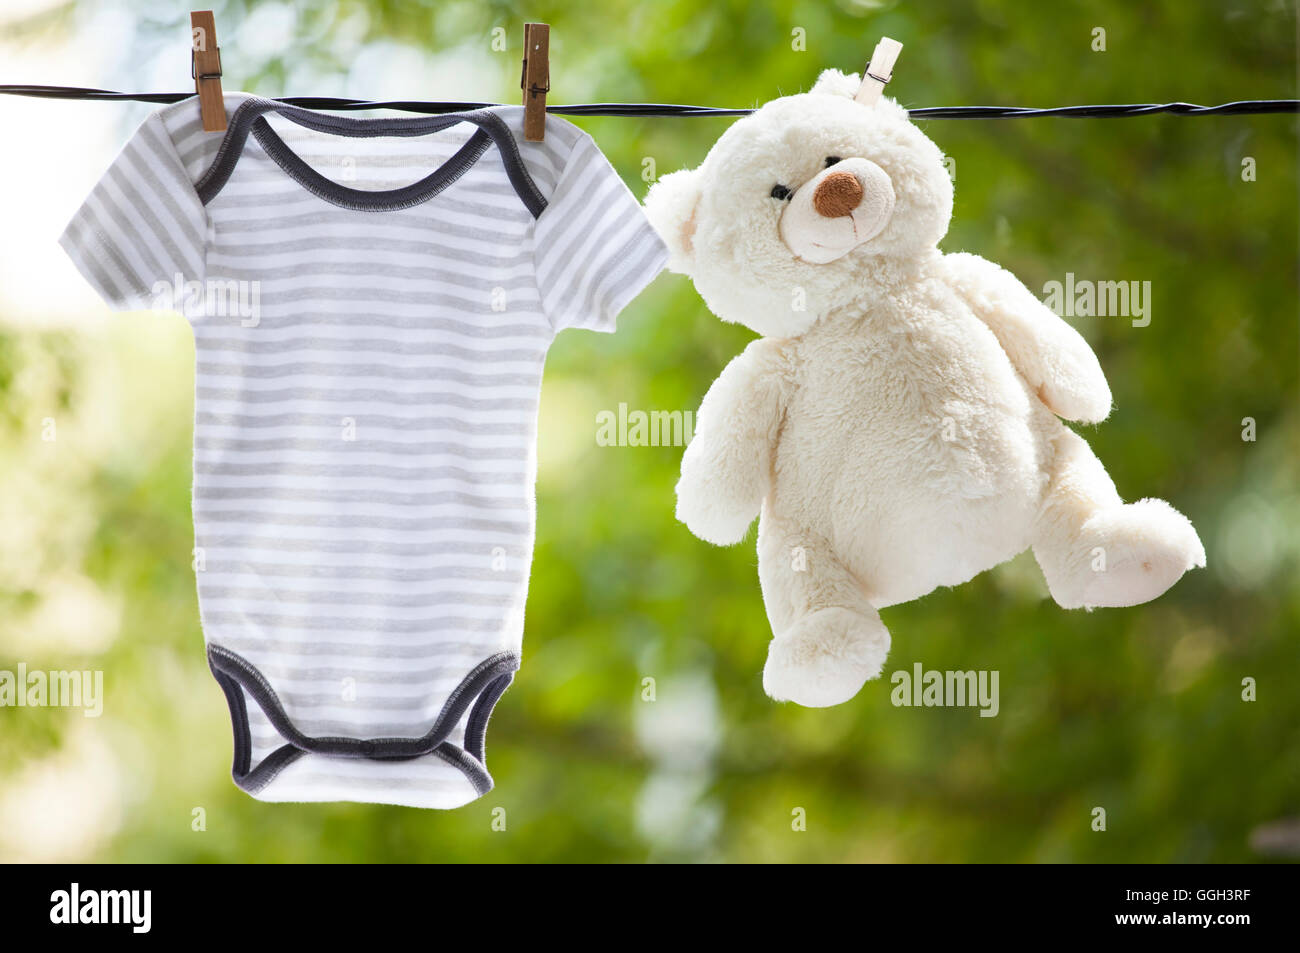 Baby clothes and teddy bear hanging on the clothesline - family concept - Stock Image